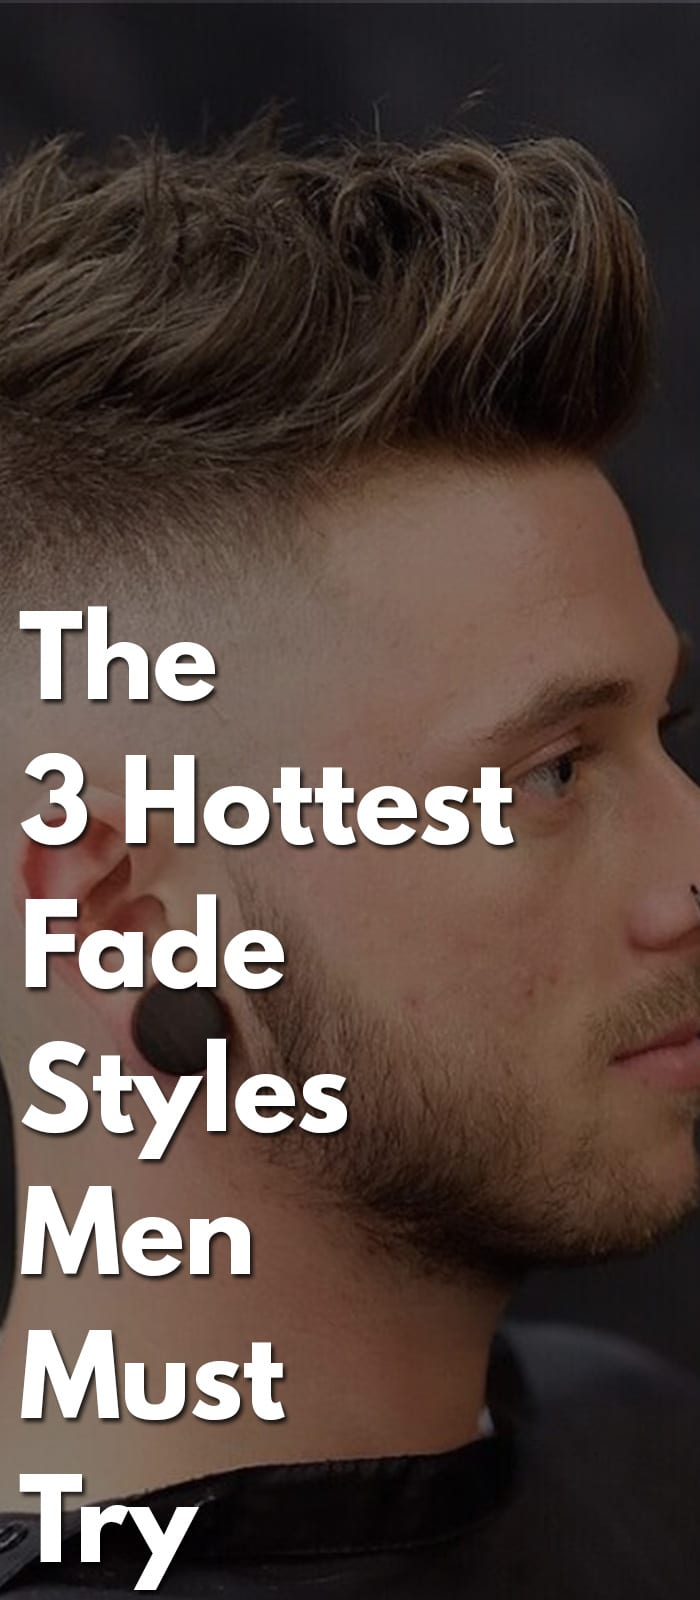 The-3-Hottest-Fade-Styles-Men-Must-Try-.